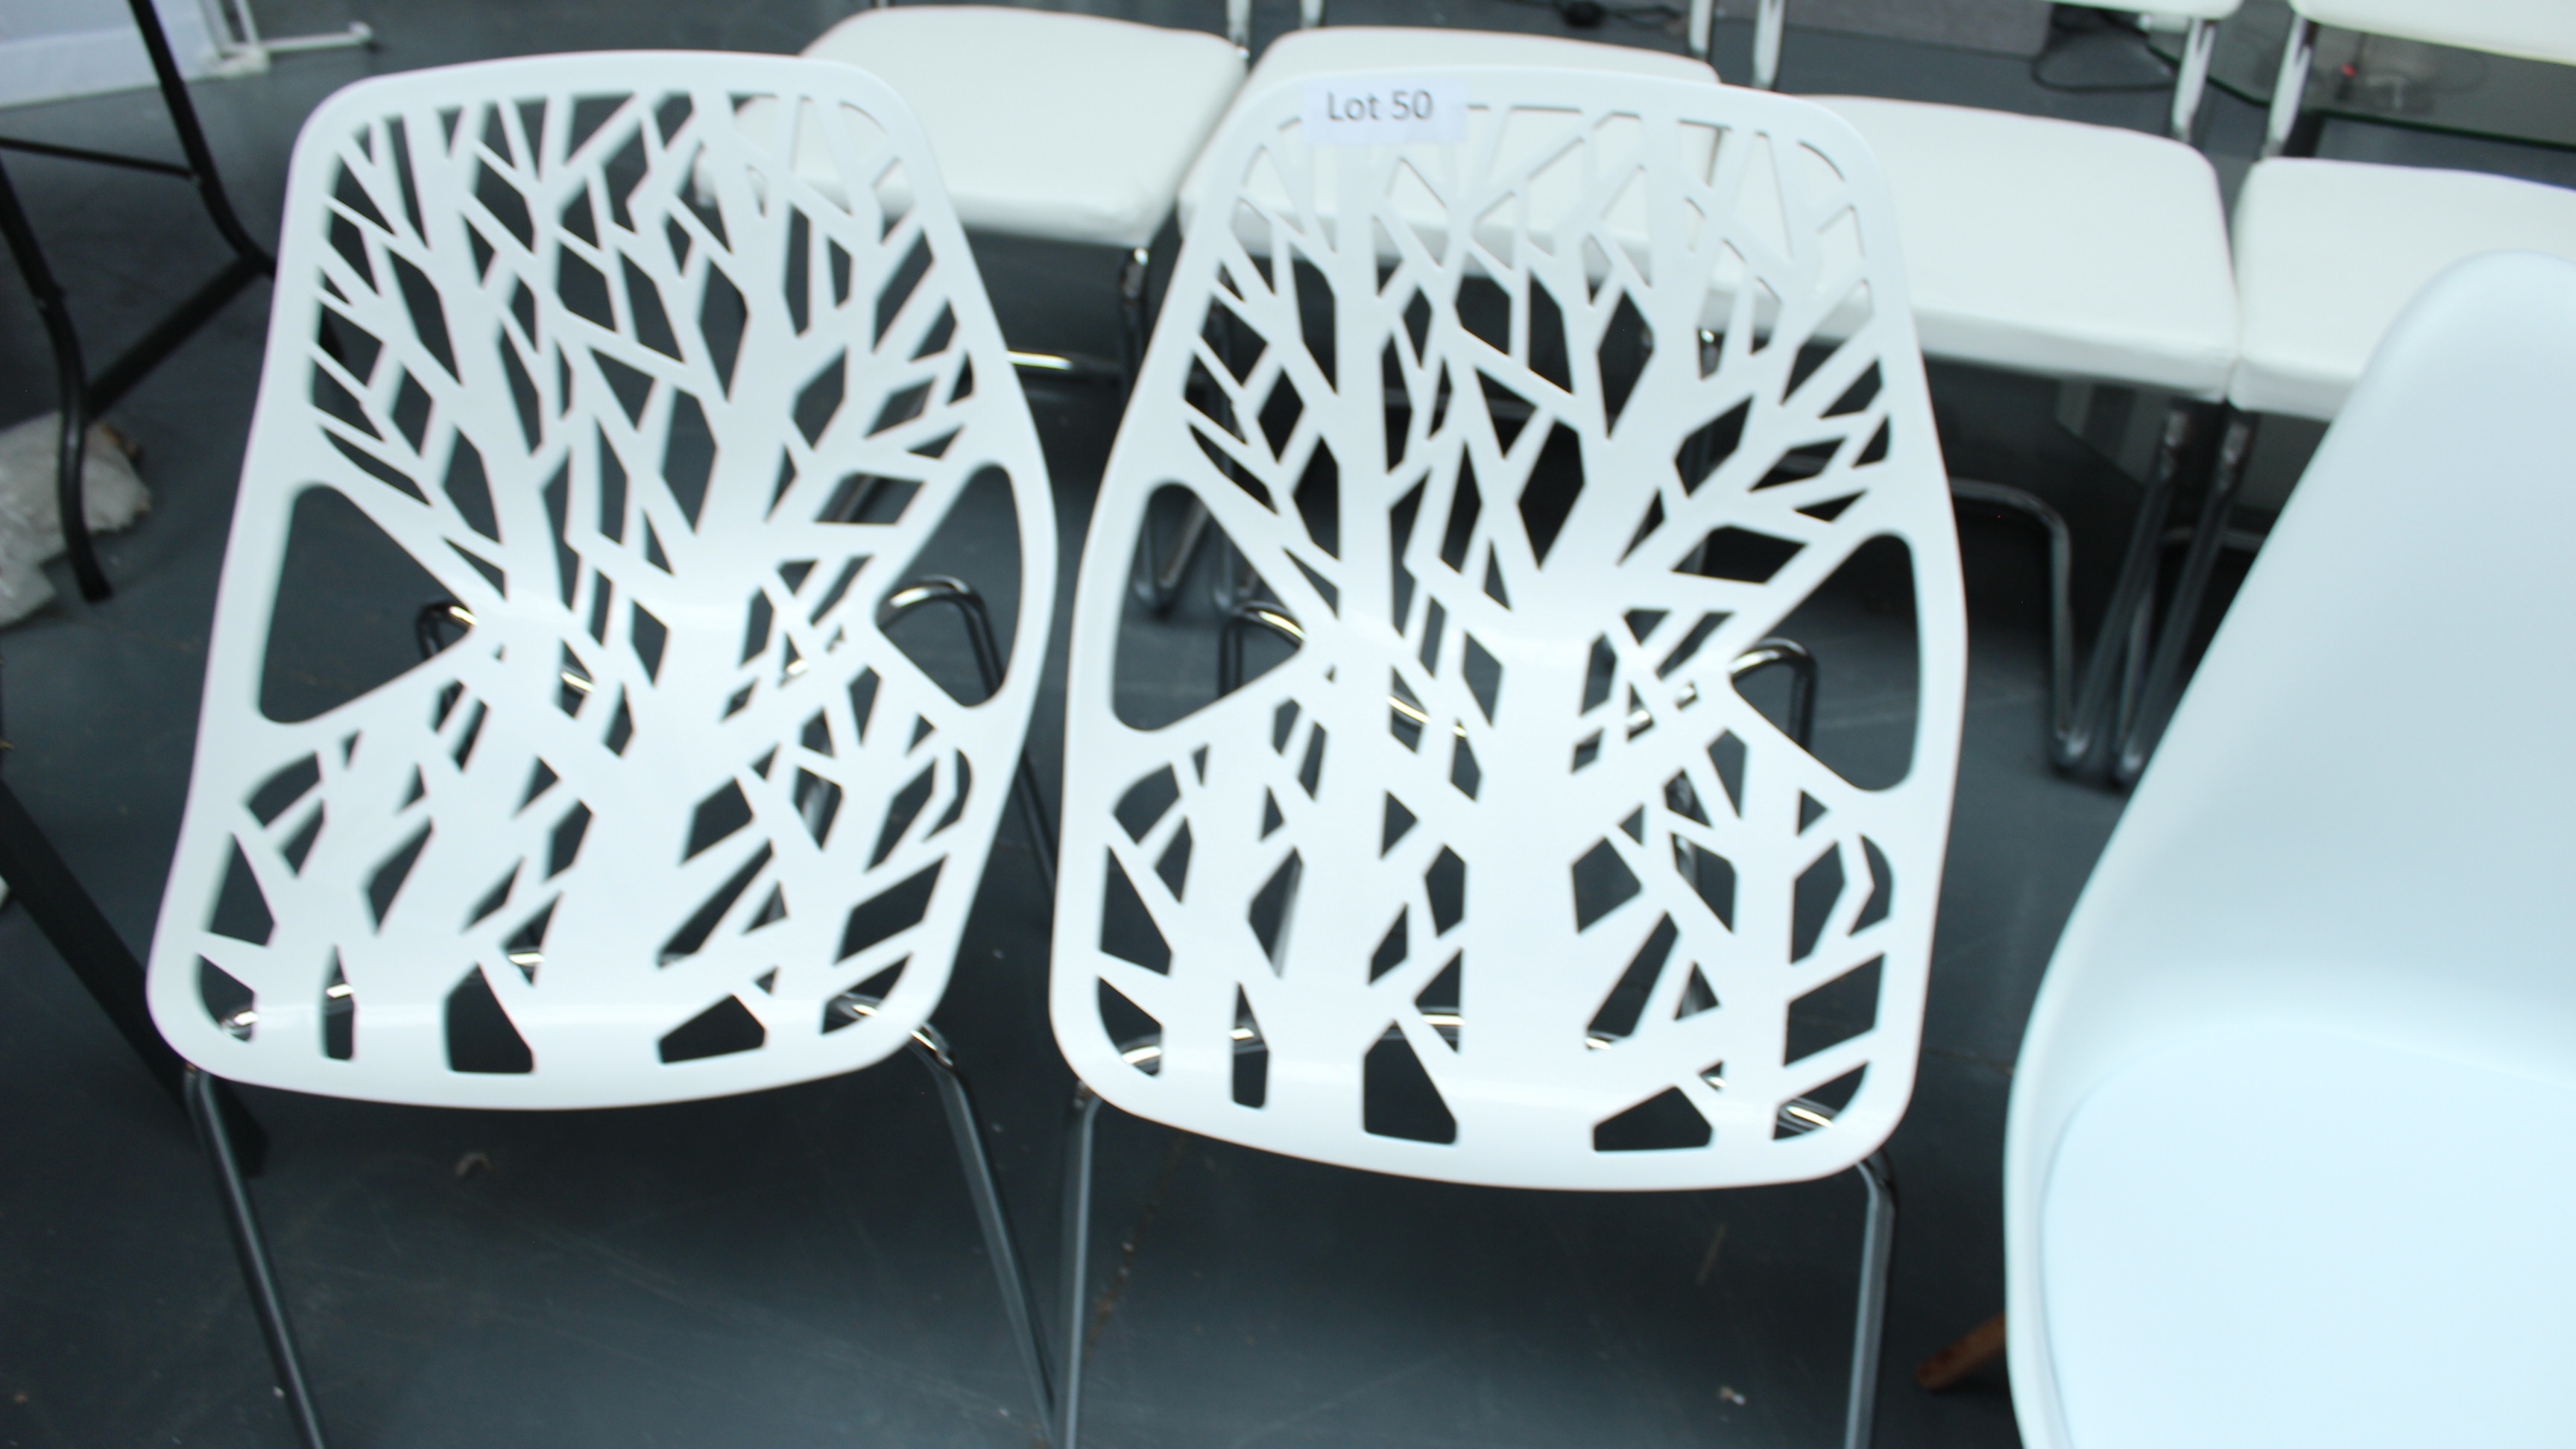 Lot 50 - 2 White Designer Style Chairs. New